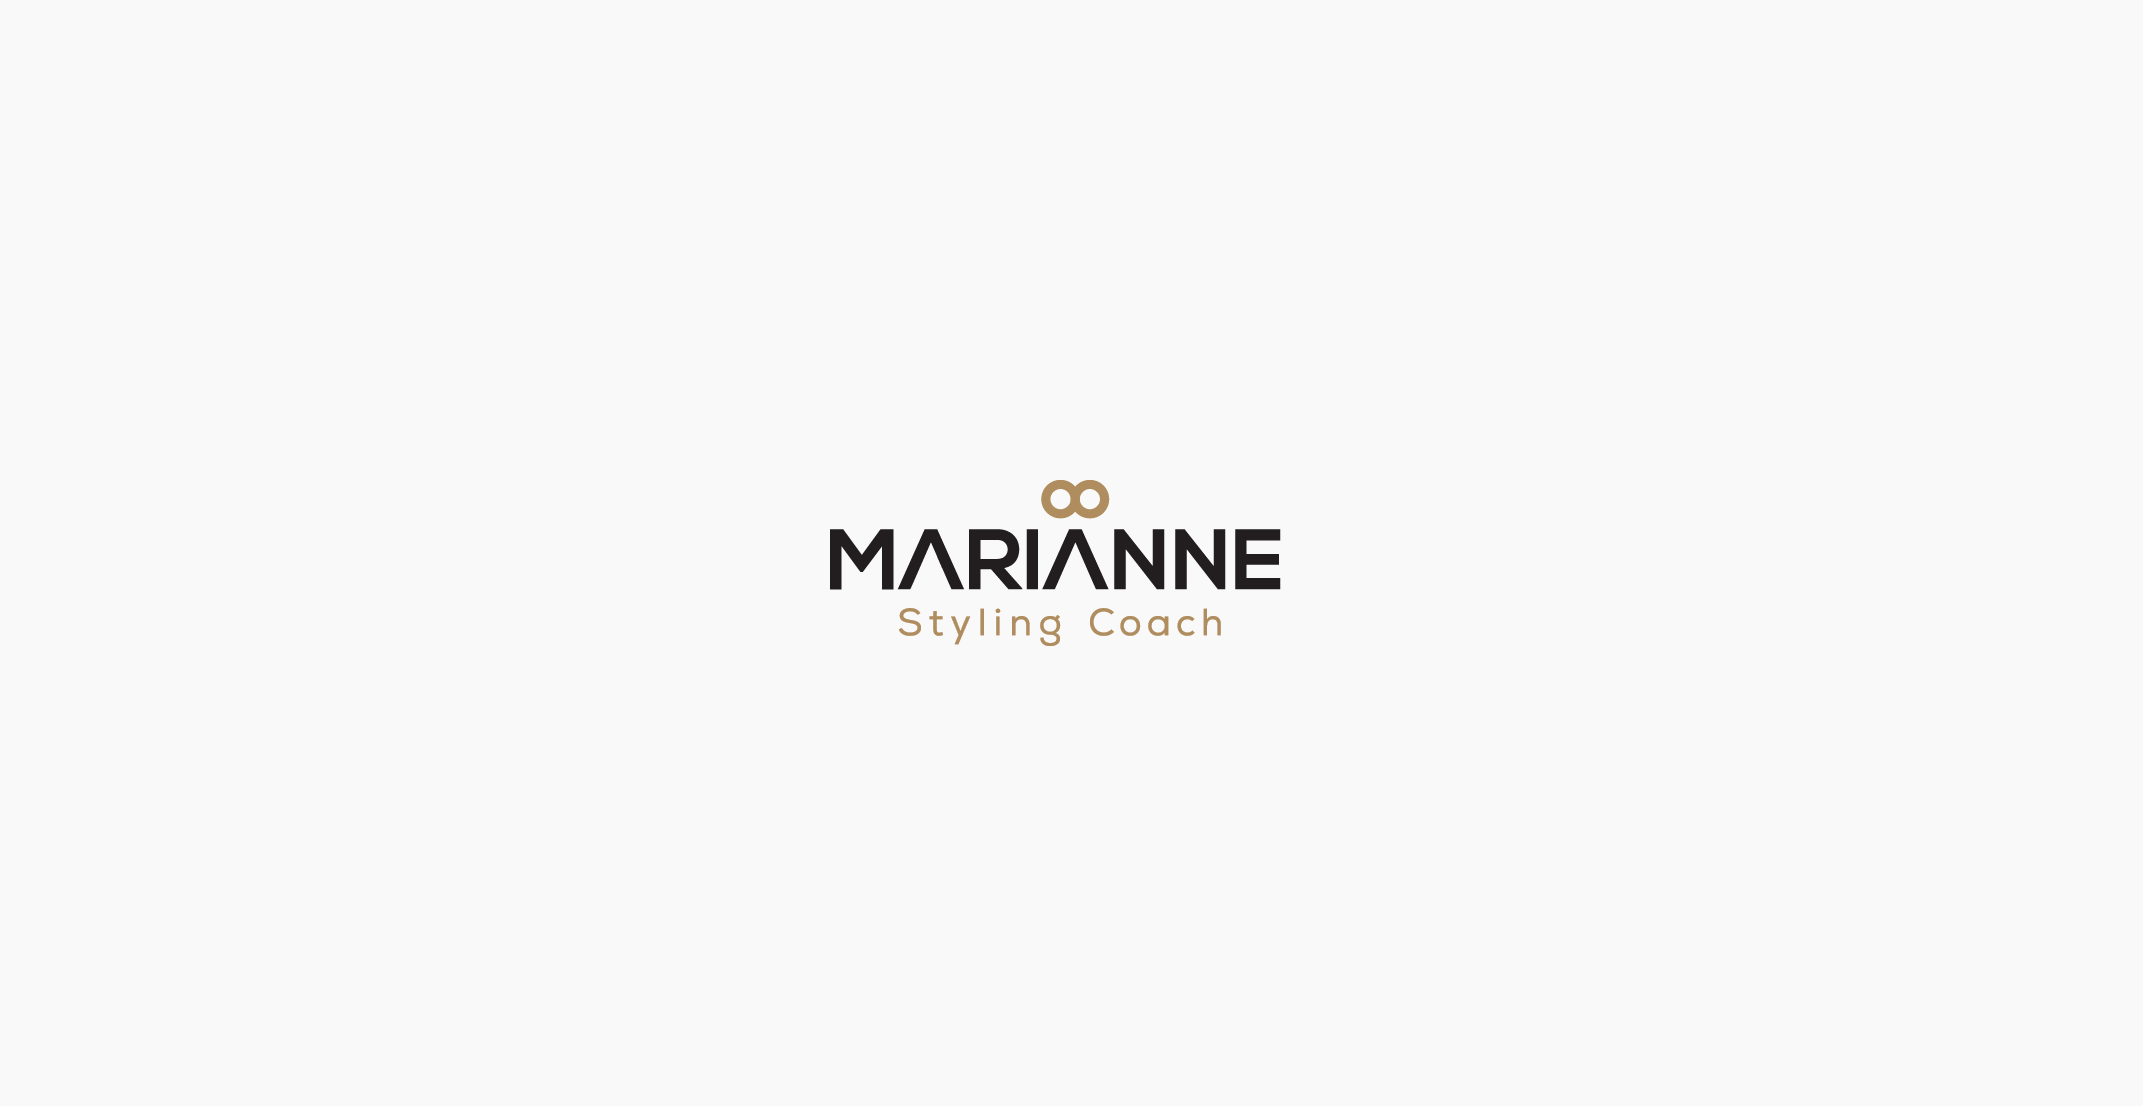 Logo designe for Marianne